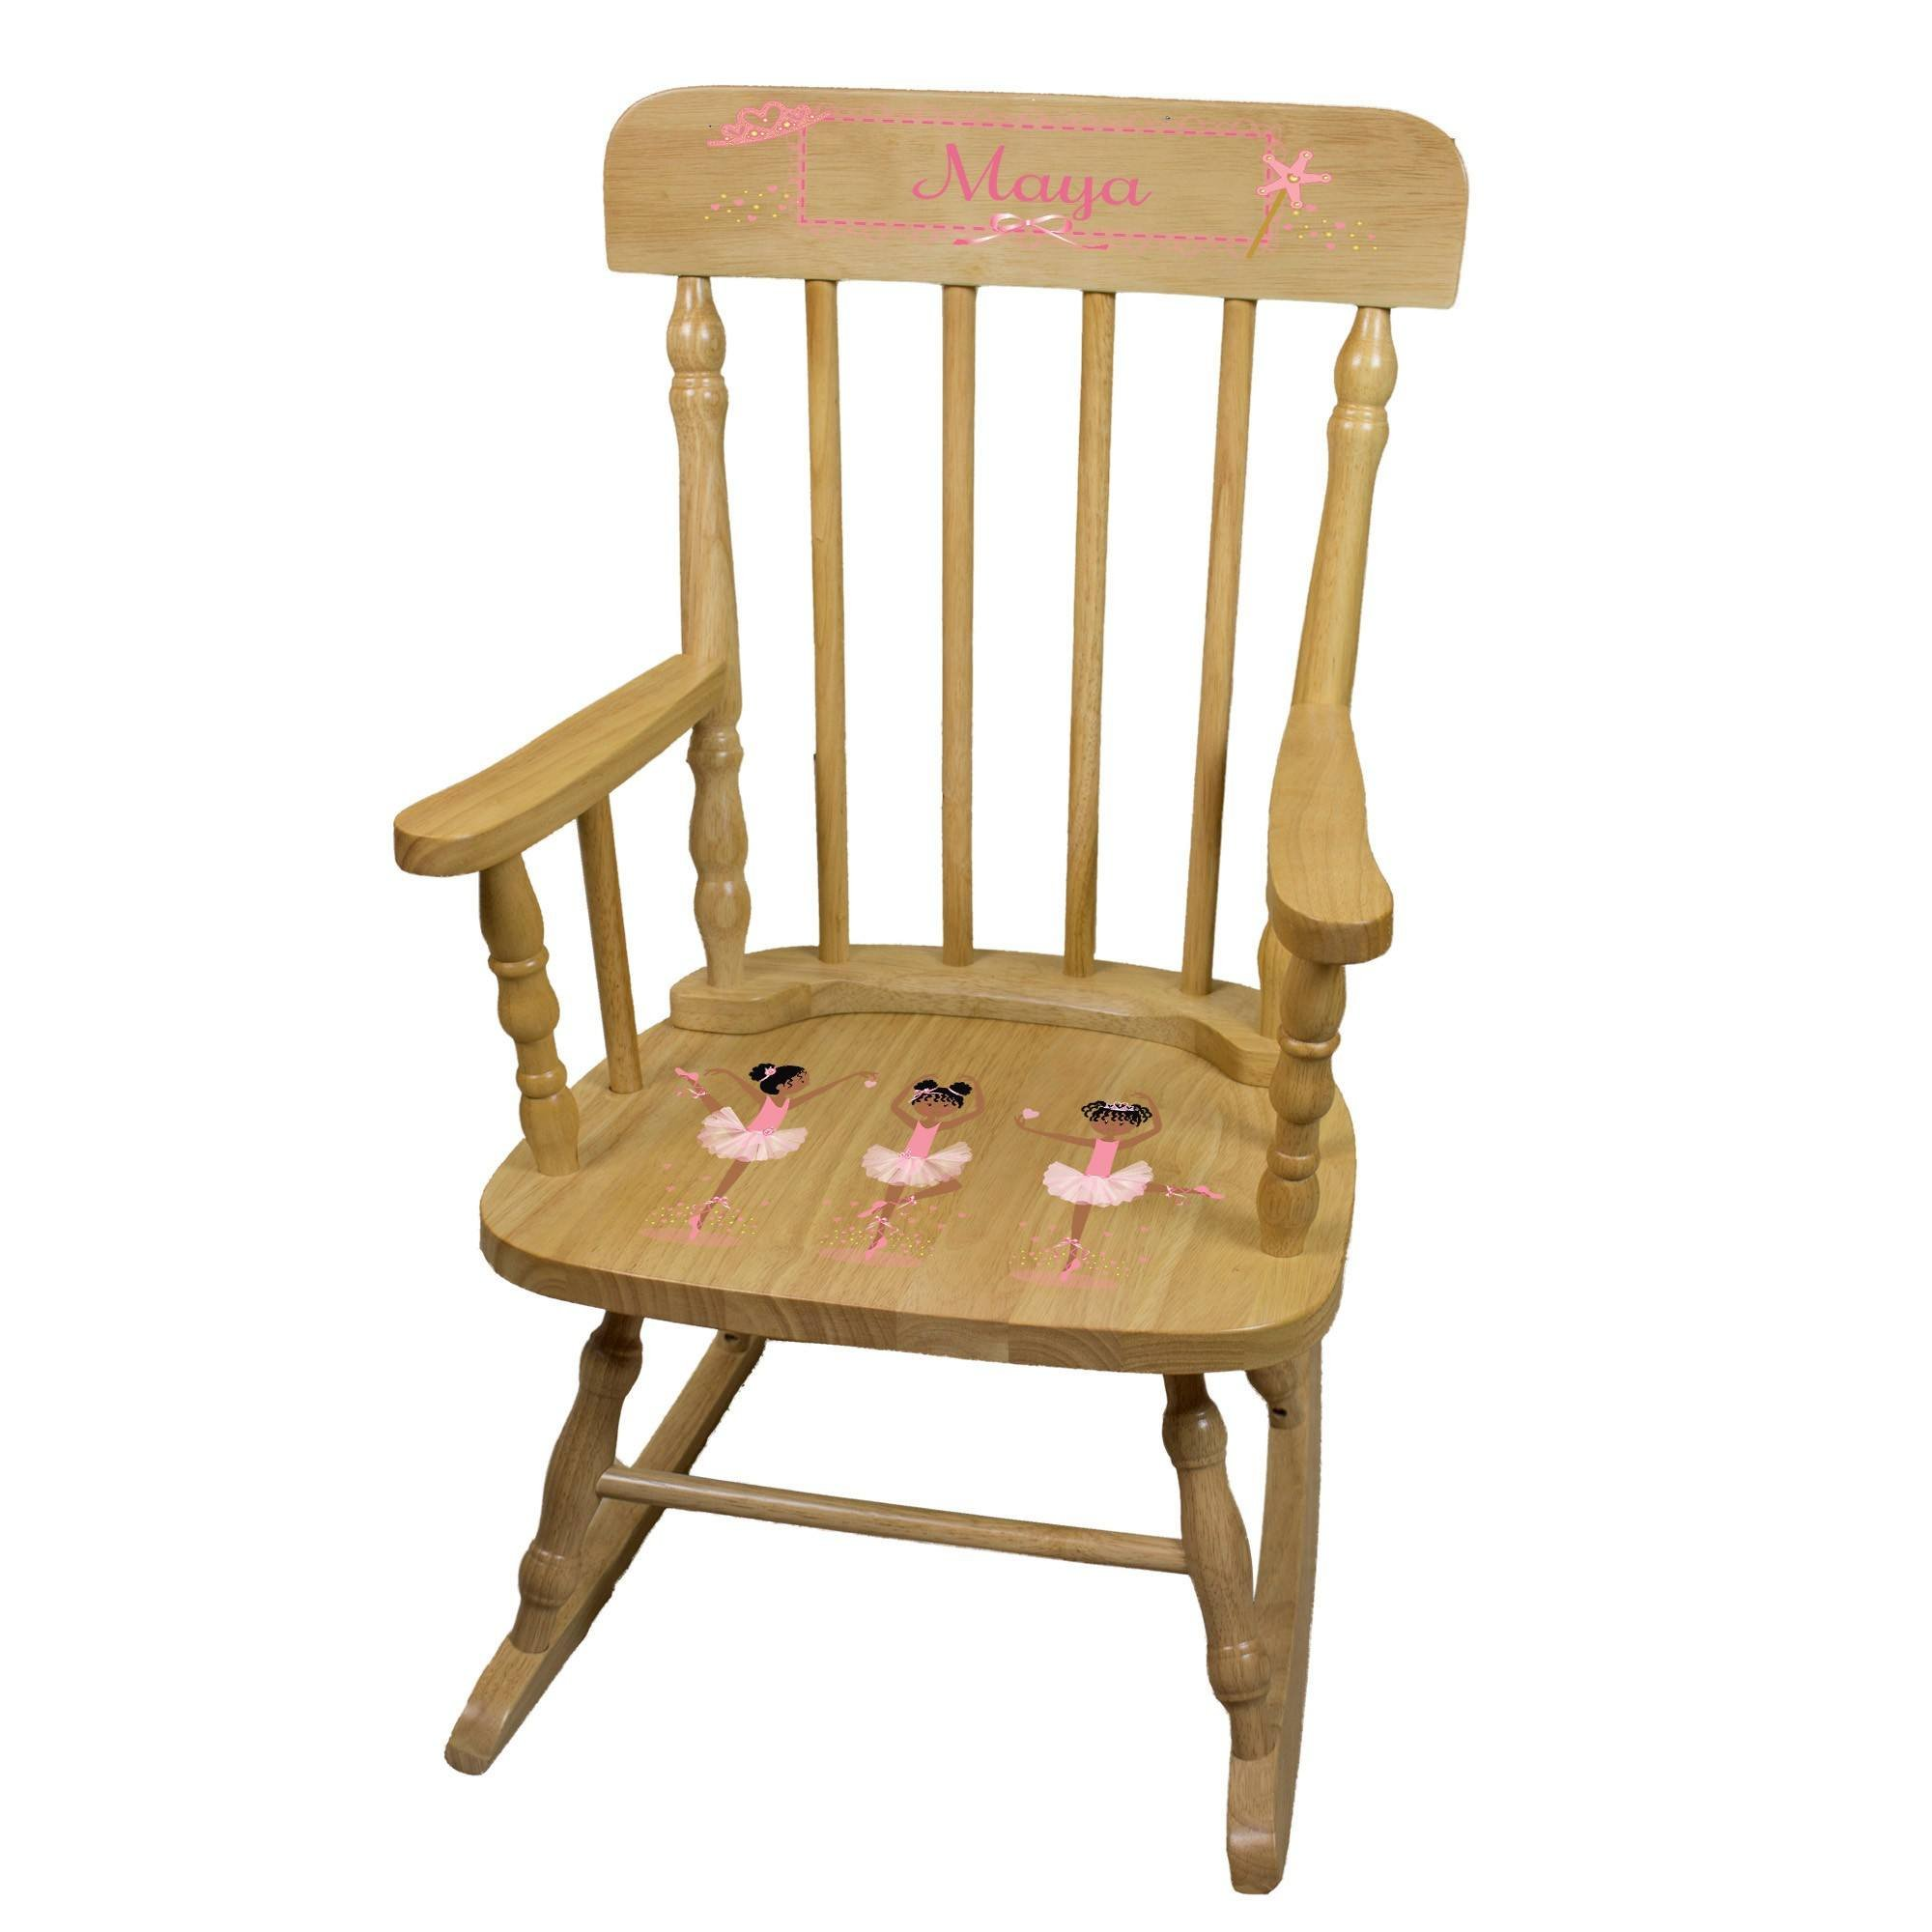 MyBambino Personalized Ballerina African American Natural Wooden Childrens Rocking Chair